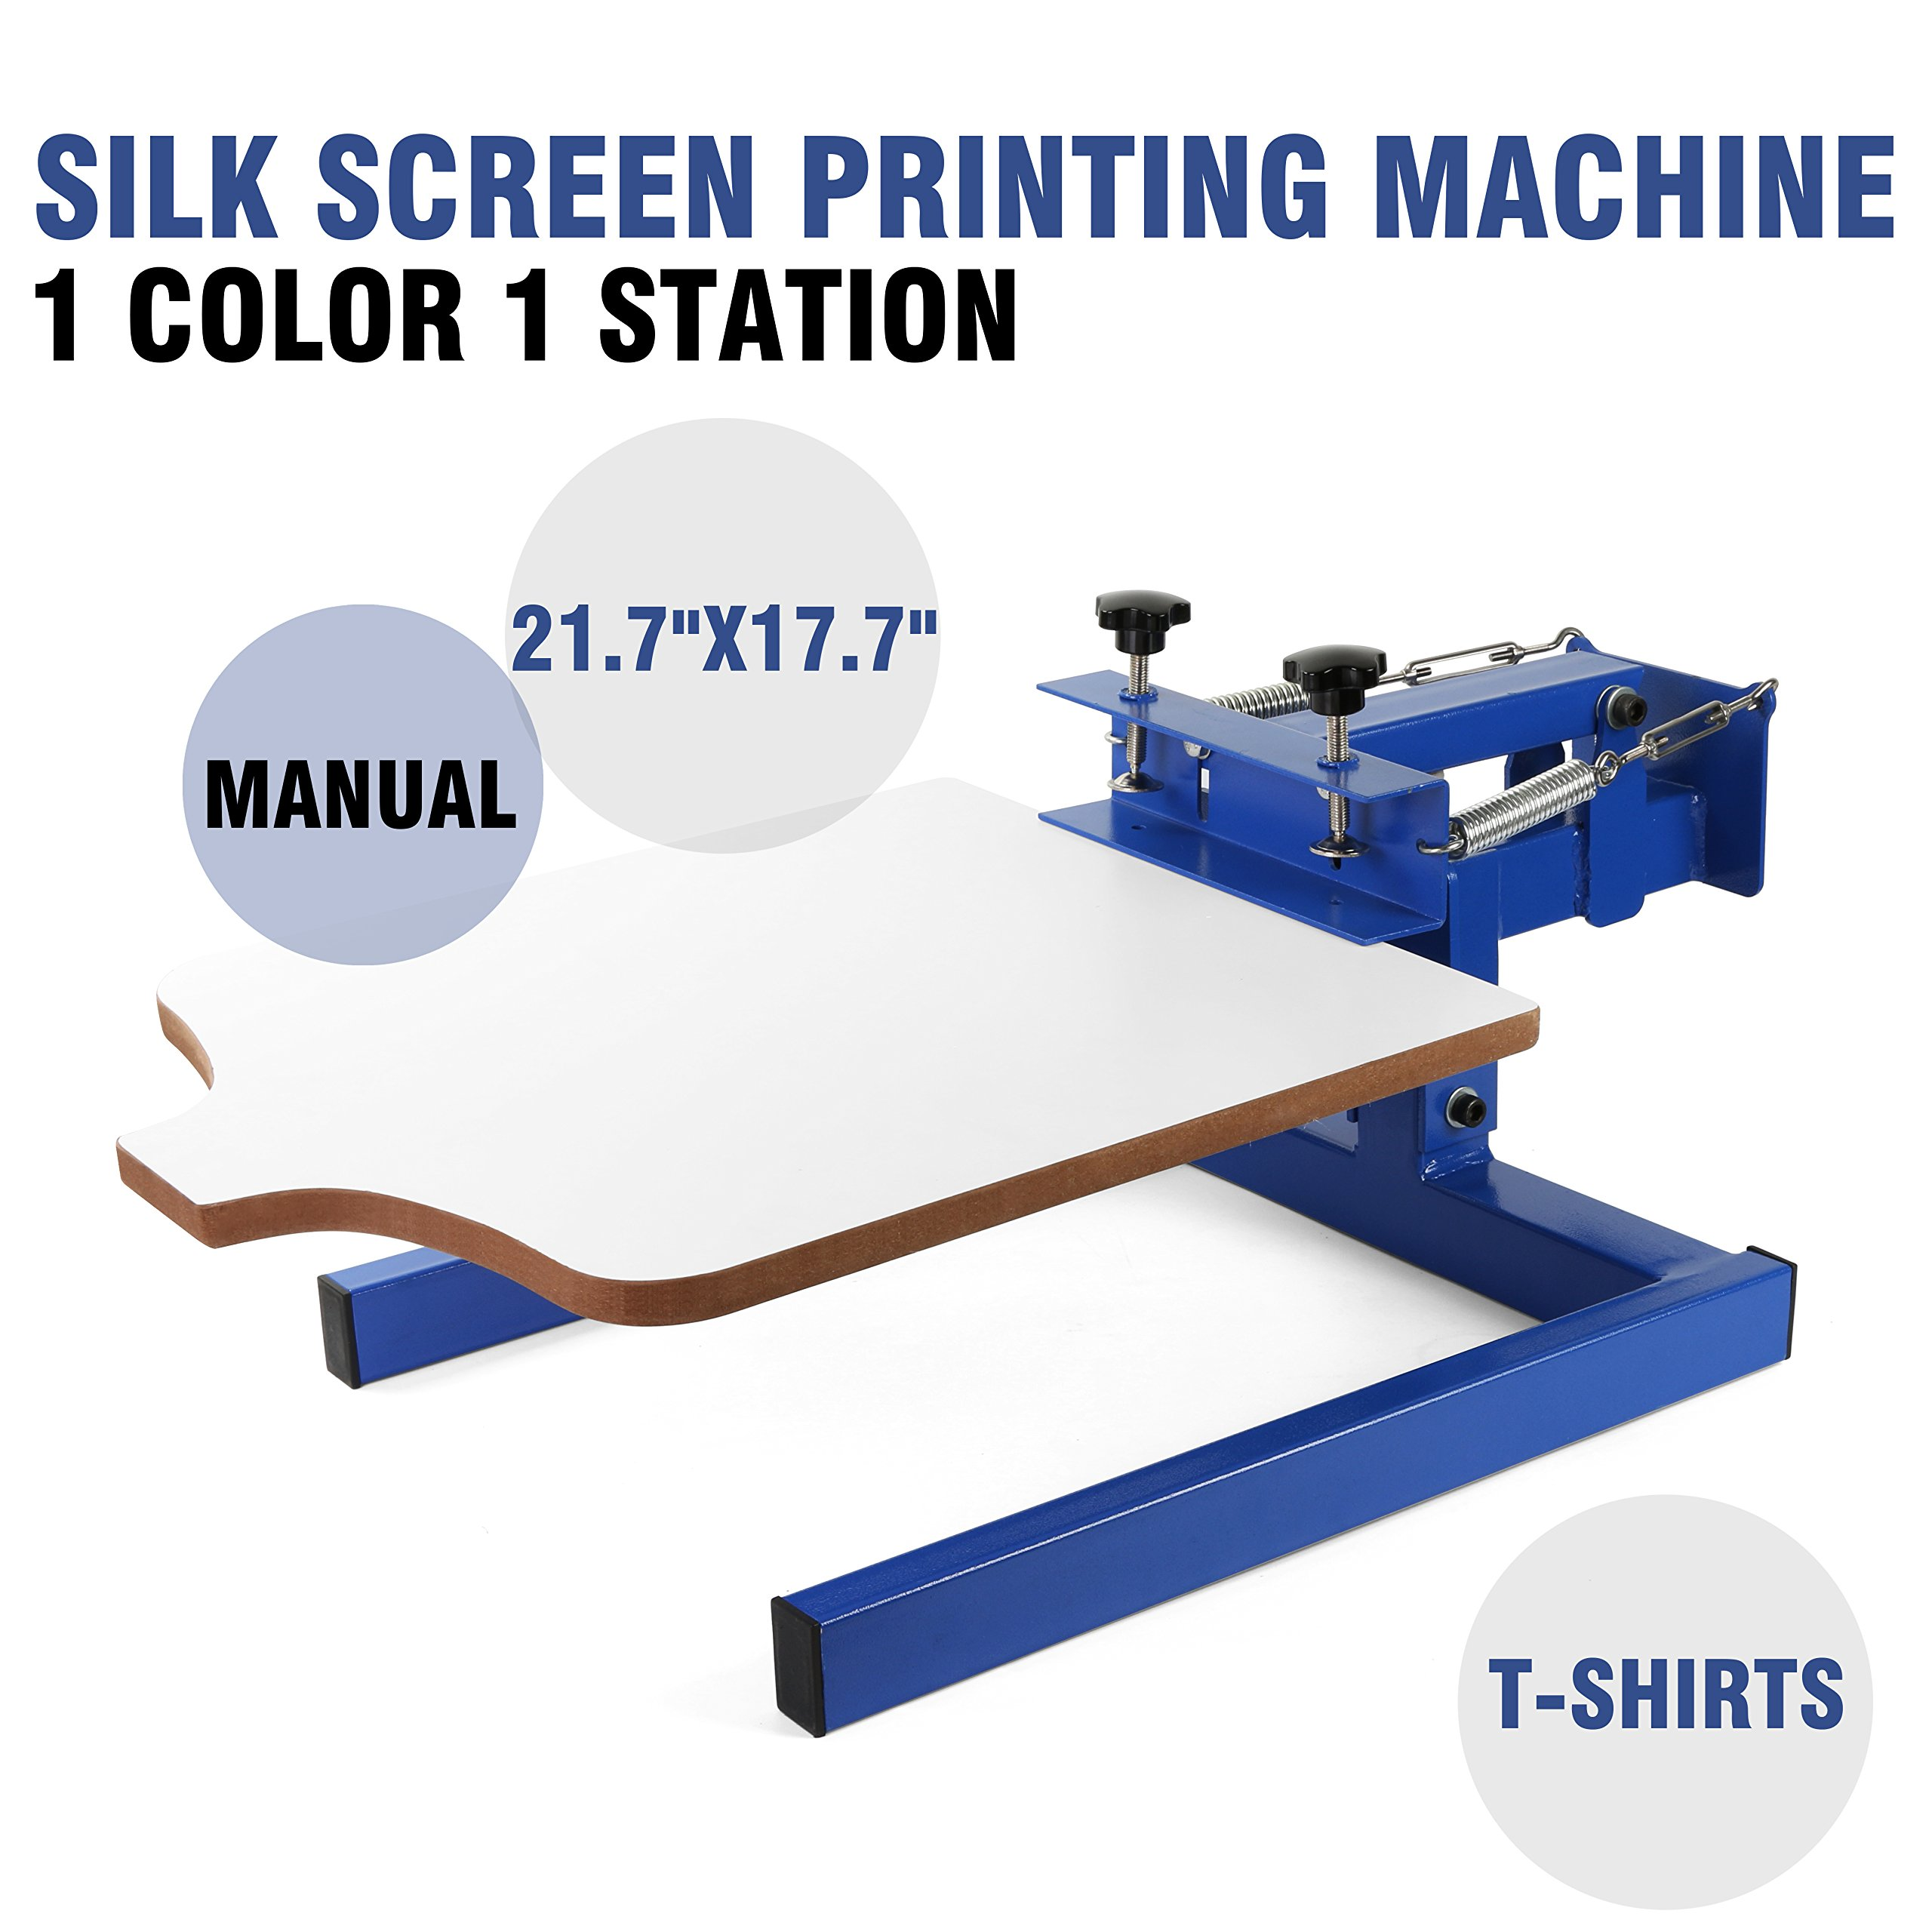 VEVOR Screen Printing Machine 1 Color 1 Station Silk Screen Printing Machine 17.7x21.7Inch Screen Printing Press for T-shirt DIY Printing Removable Pallet (1 Color 1 Station) by VEVOR